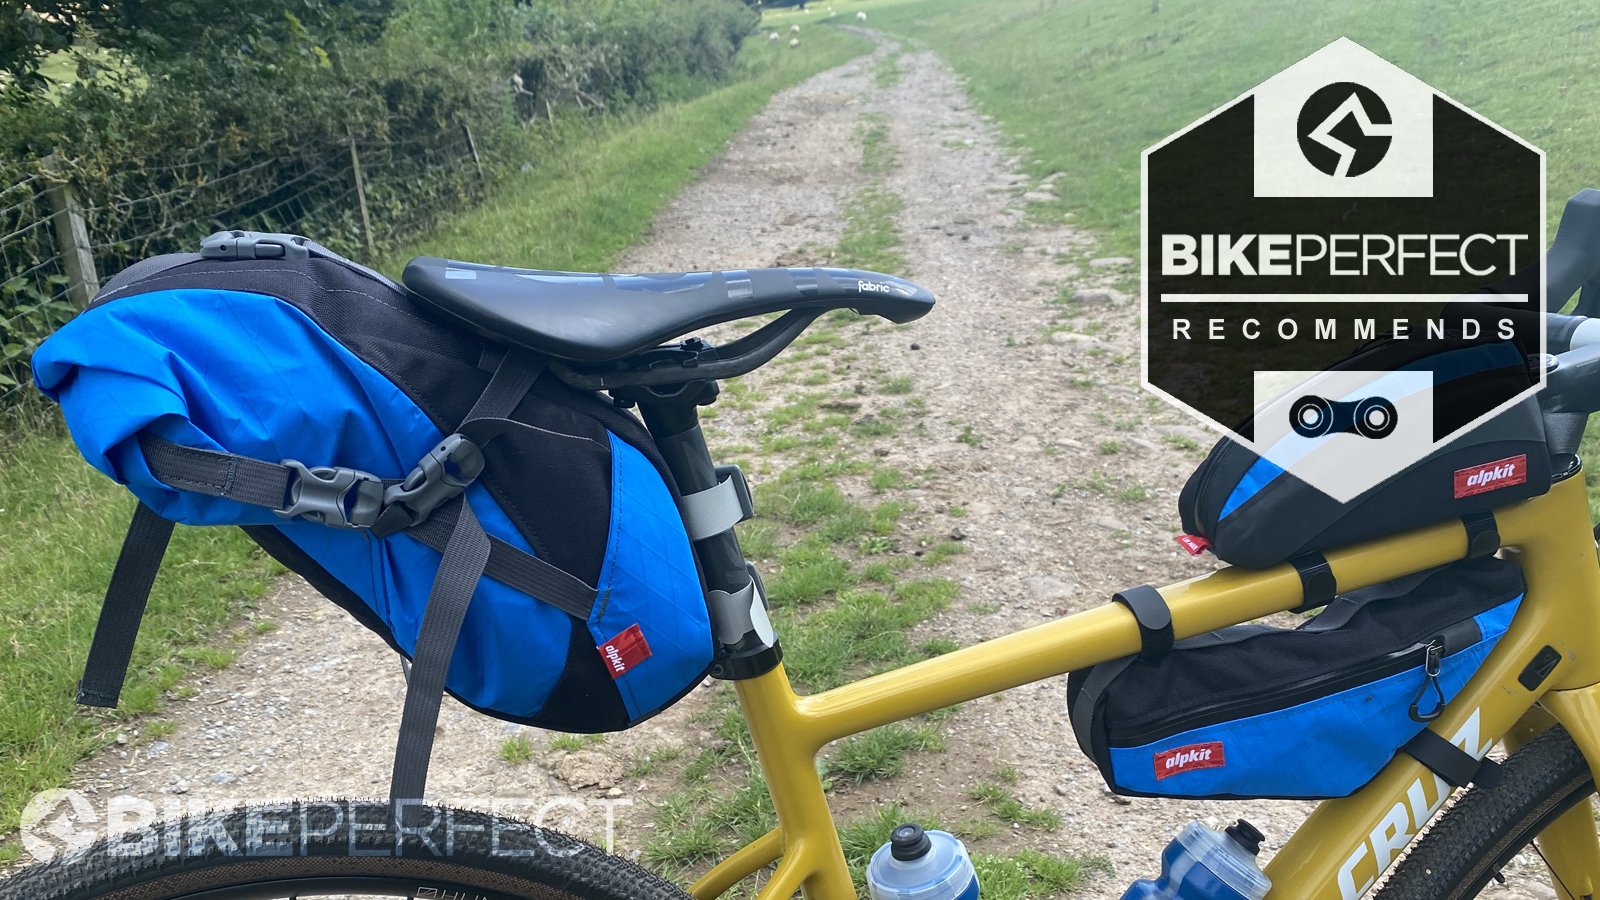 Alpkit bikepacking bags review: Fuel Pod, Bilbie and Koala put to the test